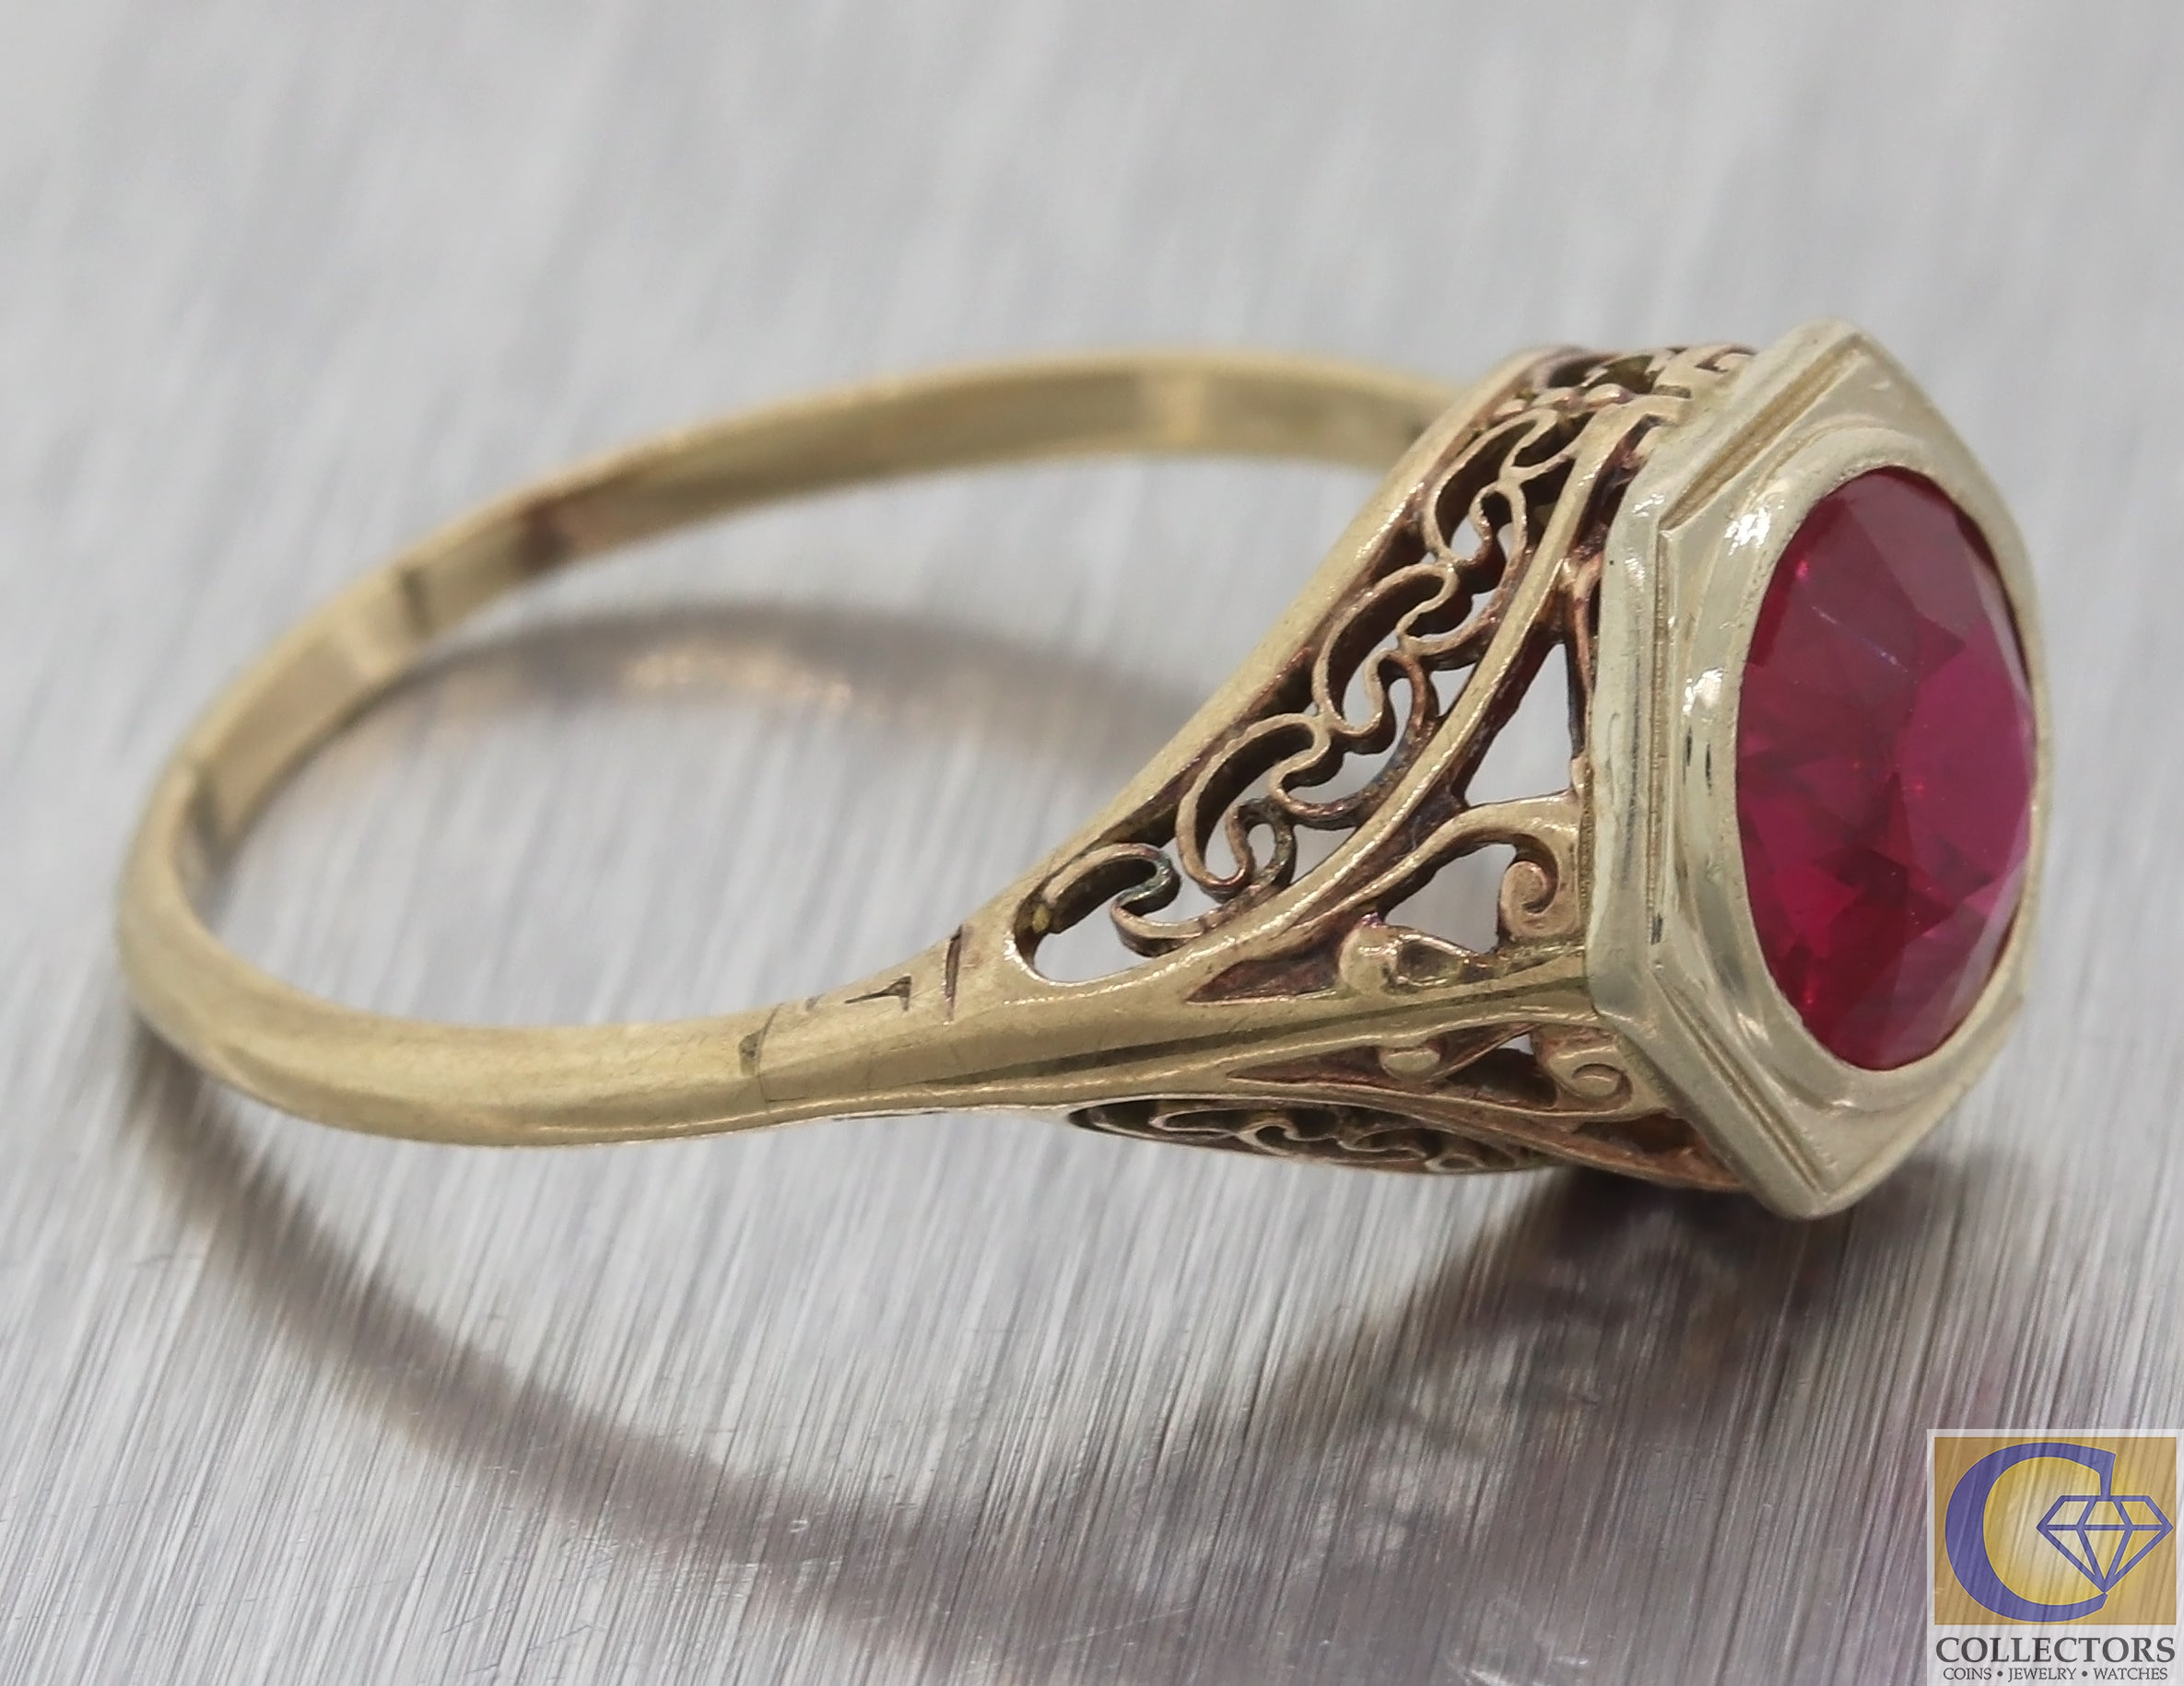 1940s Antique Art Deco 10k Yellow Gold Filigree Red Stone Cocktail Ring F8